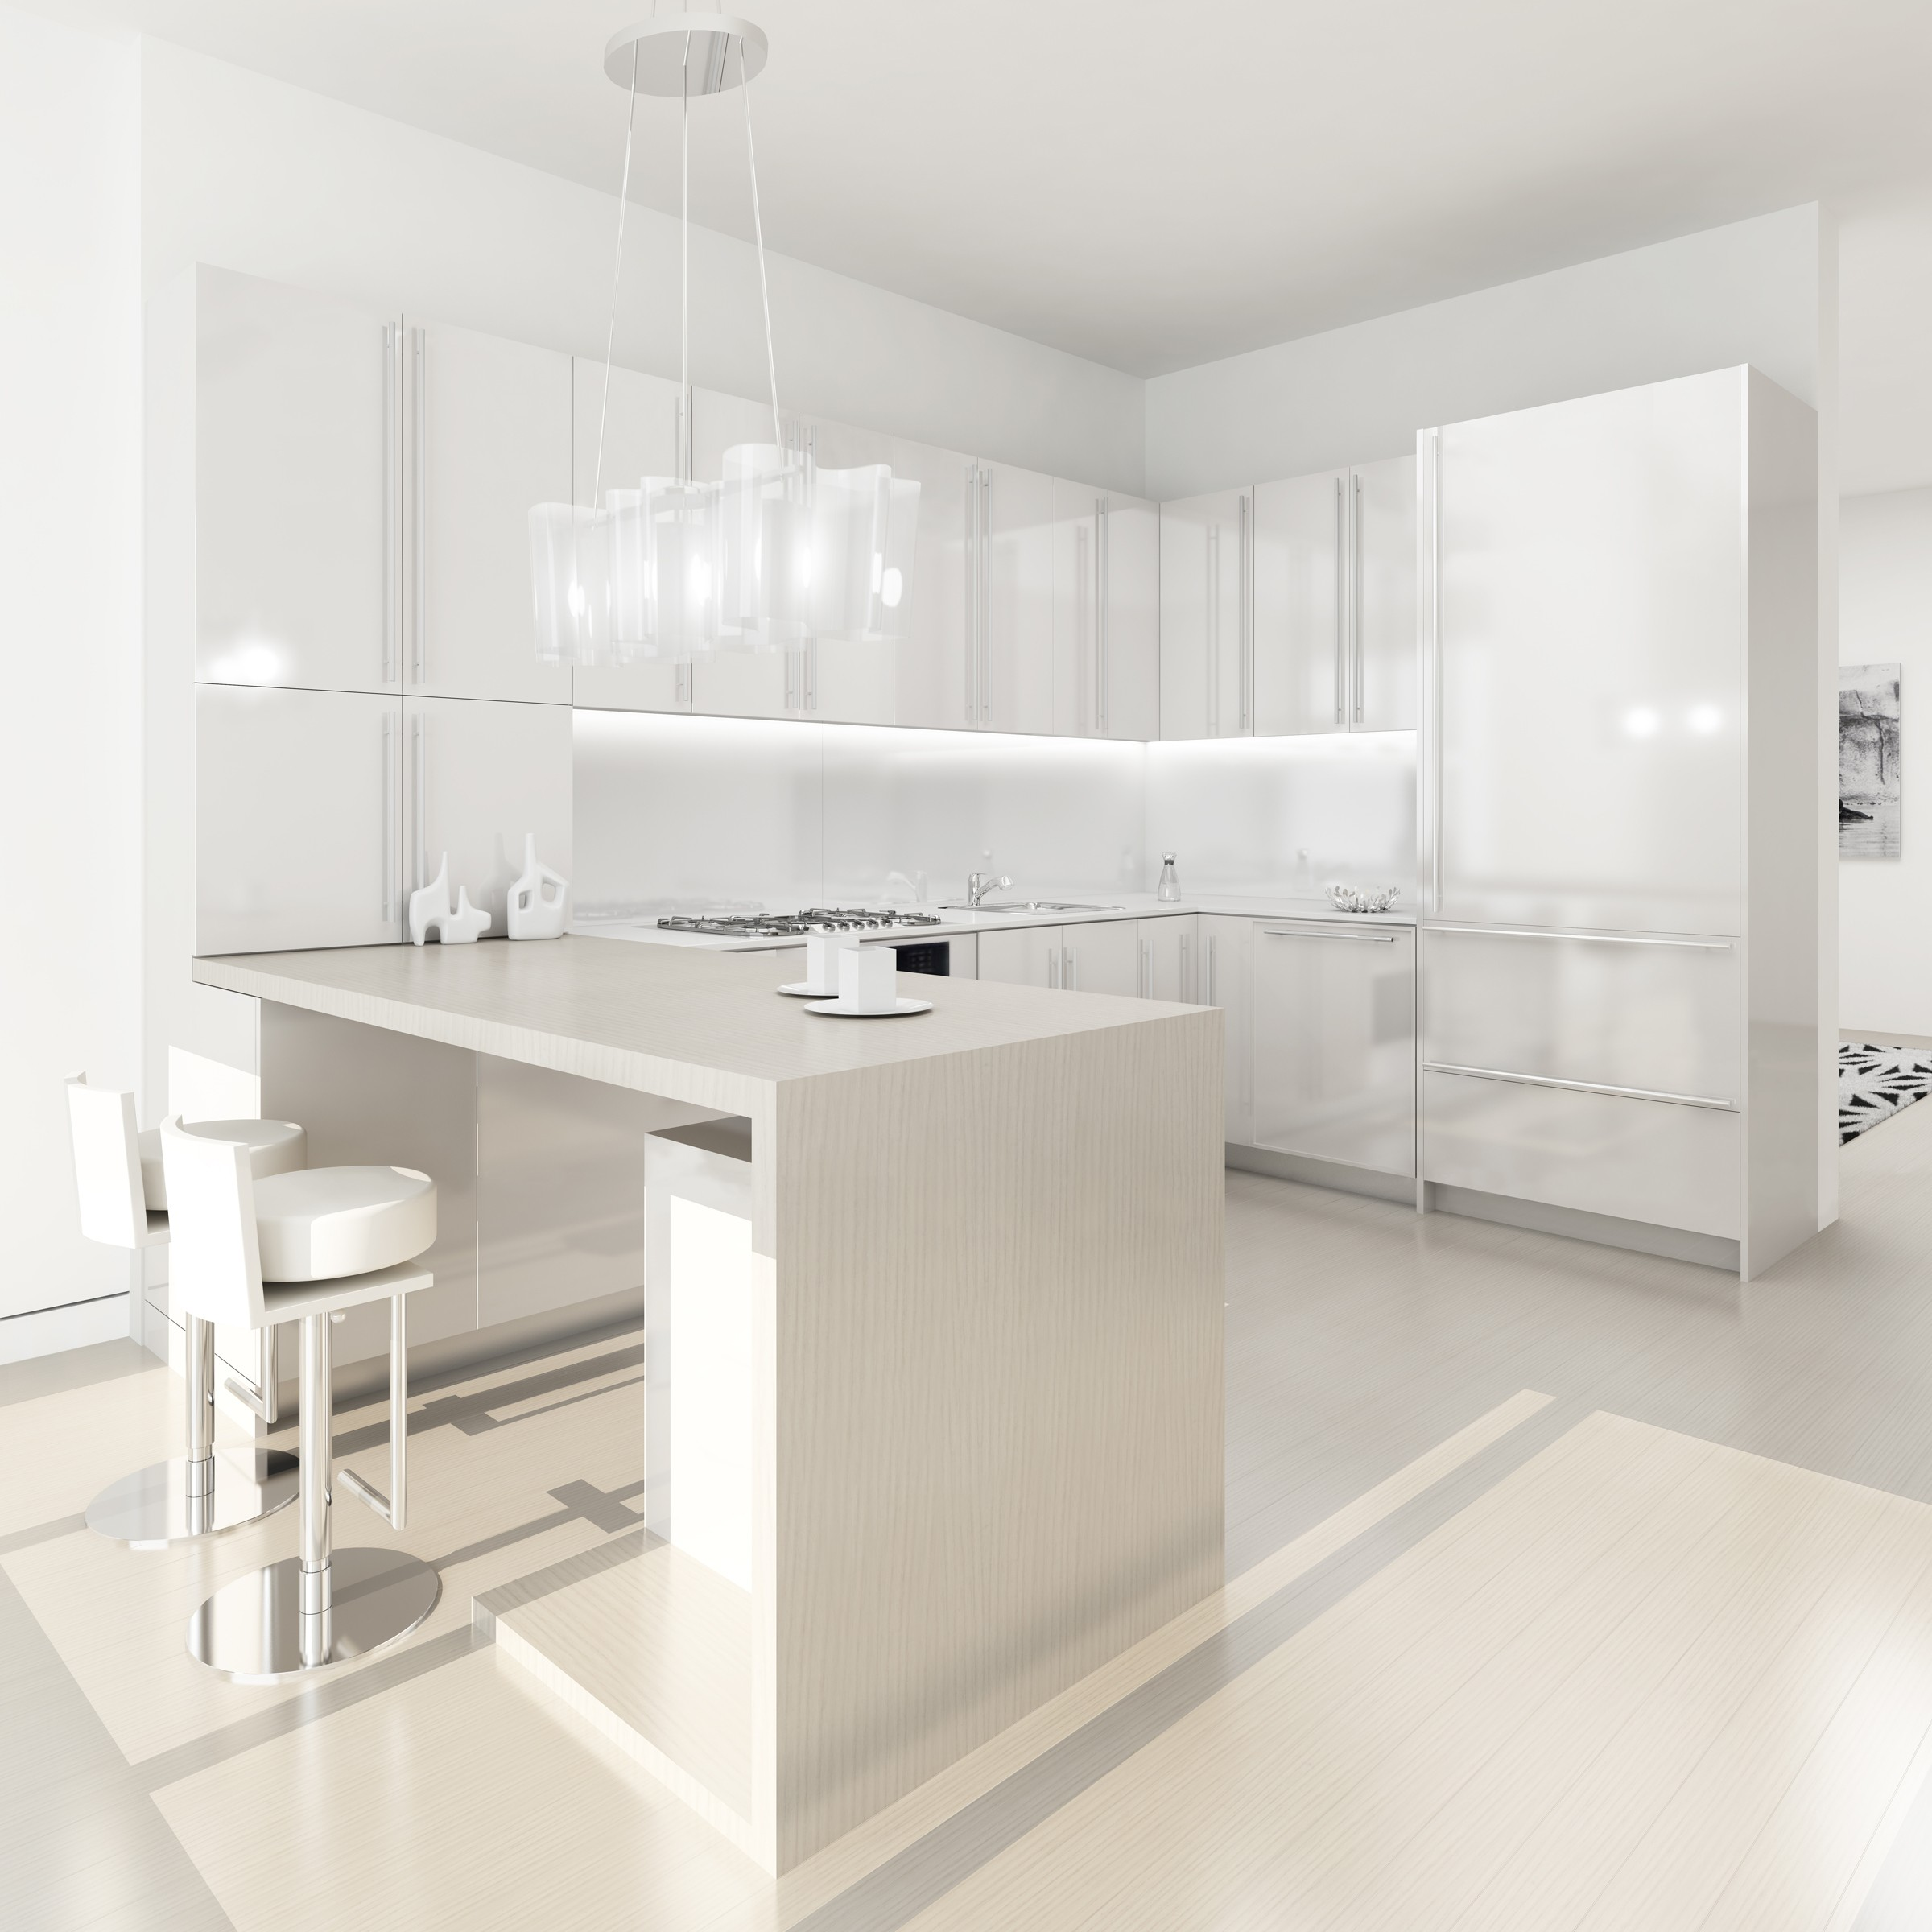 Kitchen Design Ideas With White Appliances ~ White kitchens